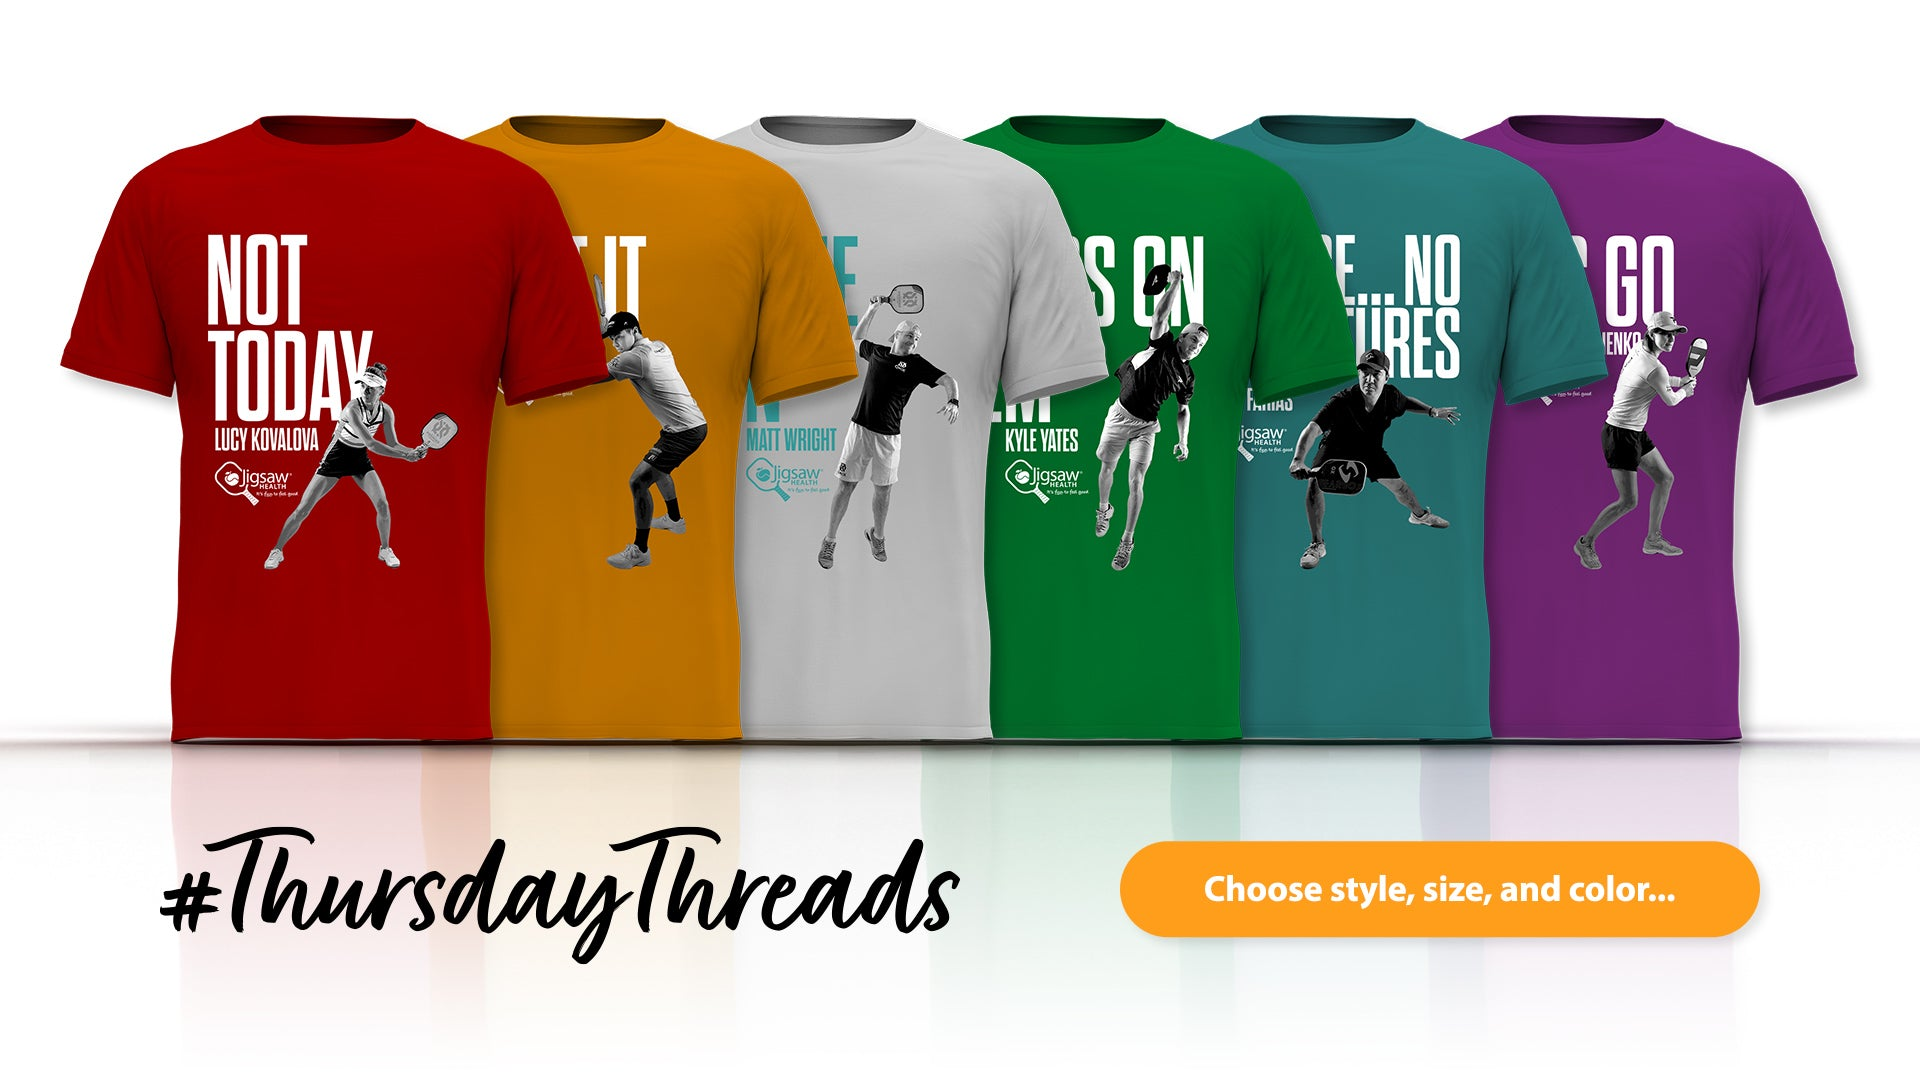 Pickleball Shirts New Colors & Styles | #ThursdayThreads